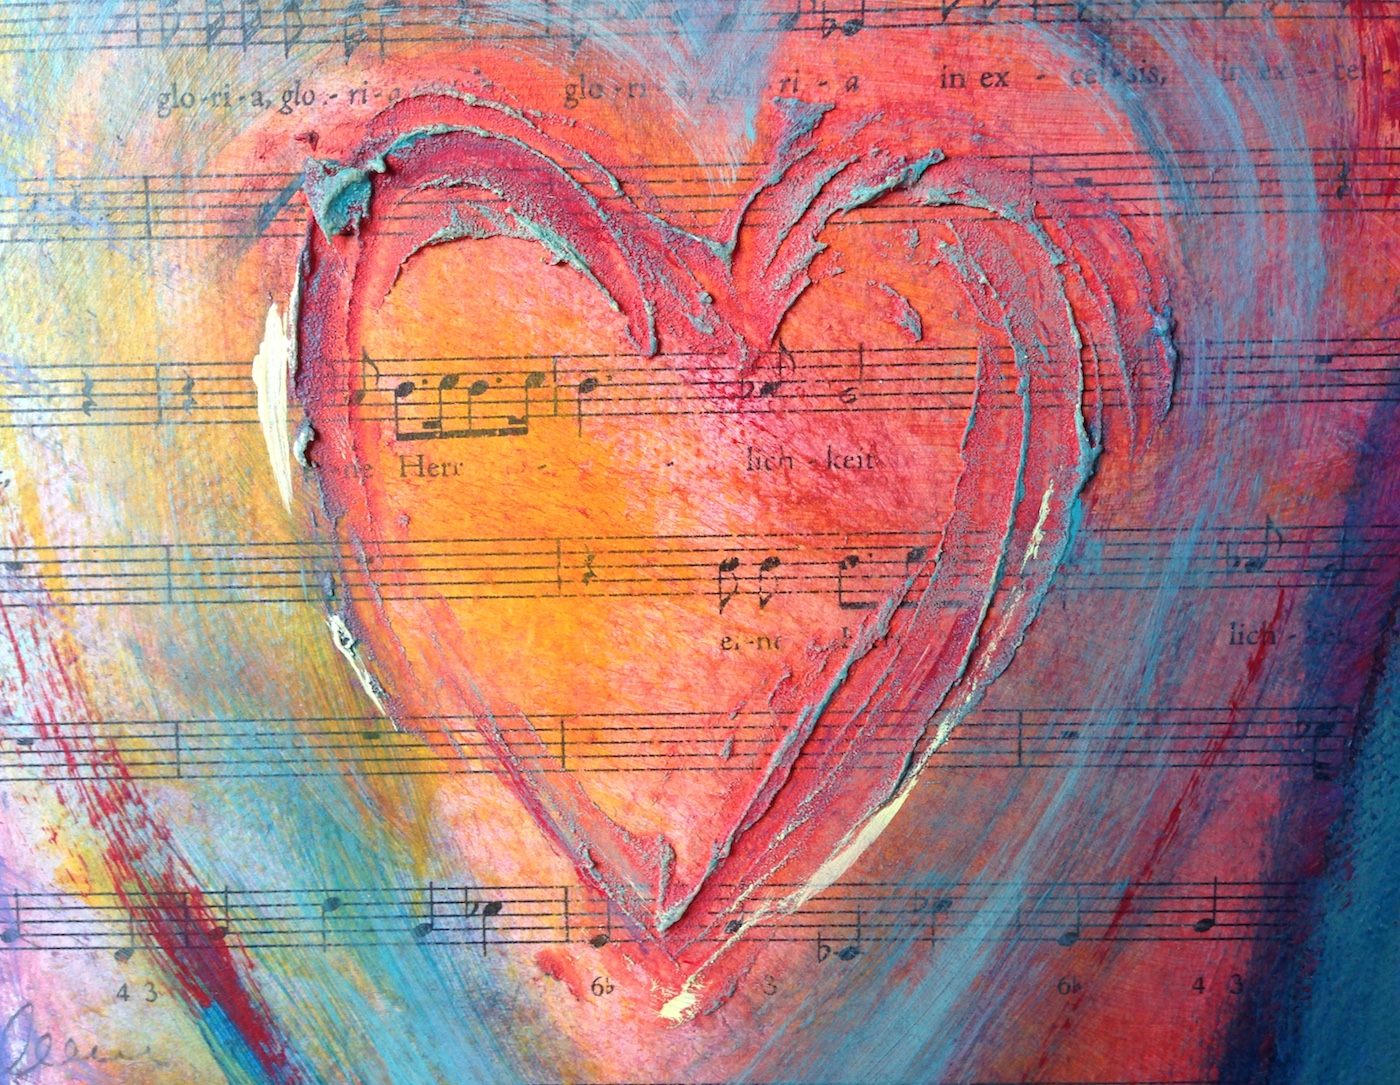 collage painting of a heart with music